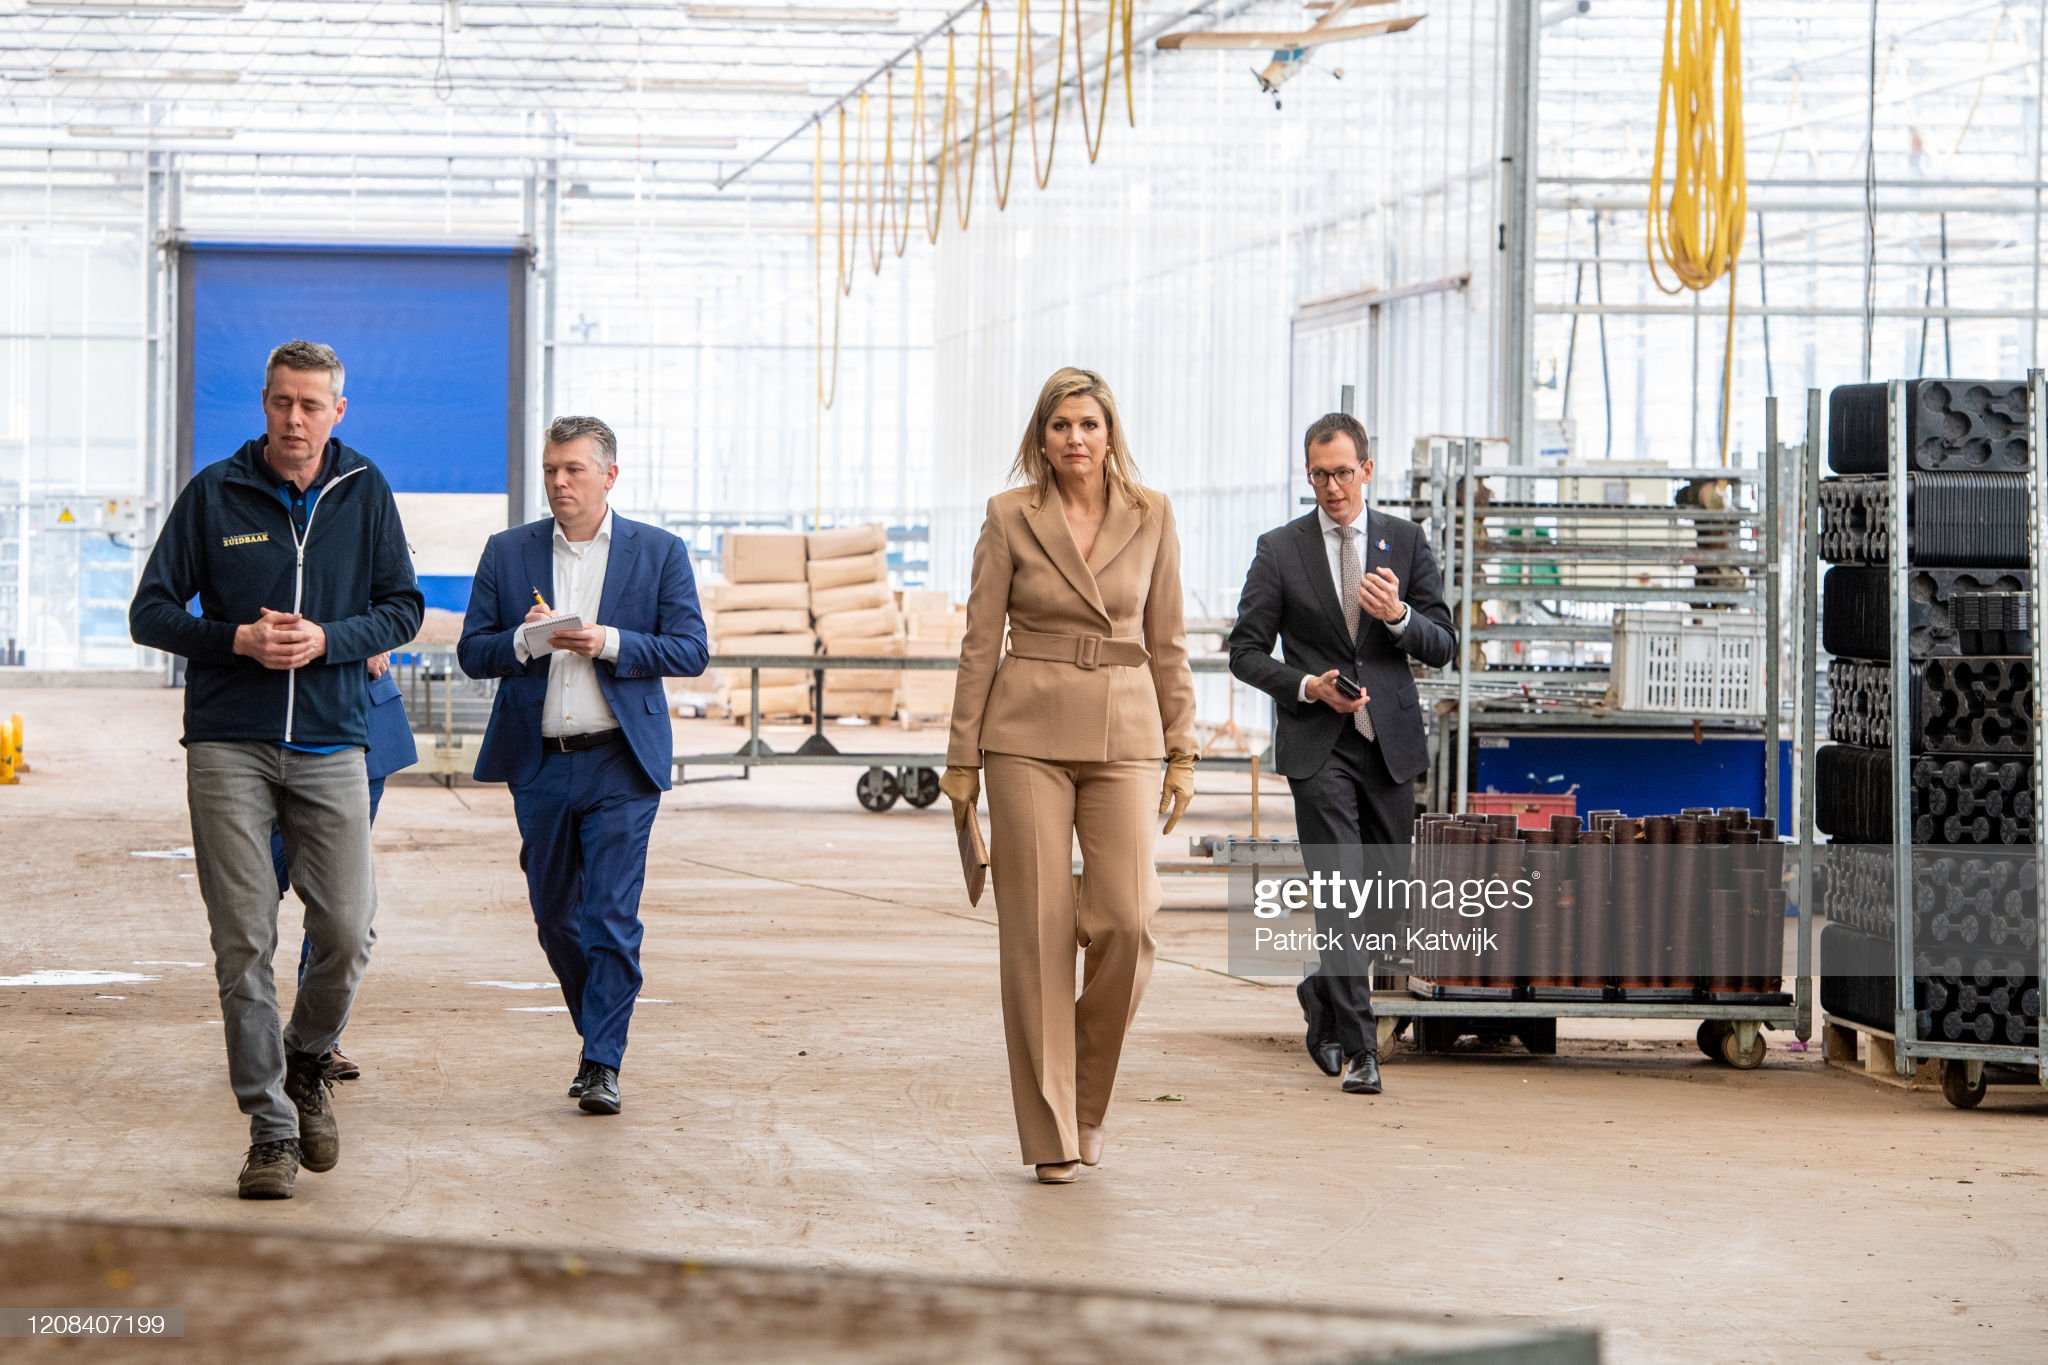 https://media.gettyimages.com/photos/queen-maxima-of-the-netherlands-visits-zuidbaak-floriculture-company-picture-id1208407199?s=2048x2048